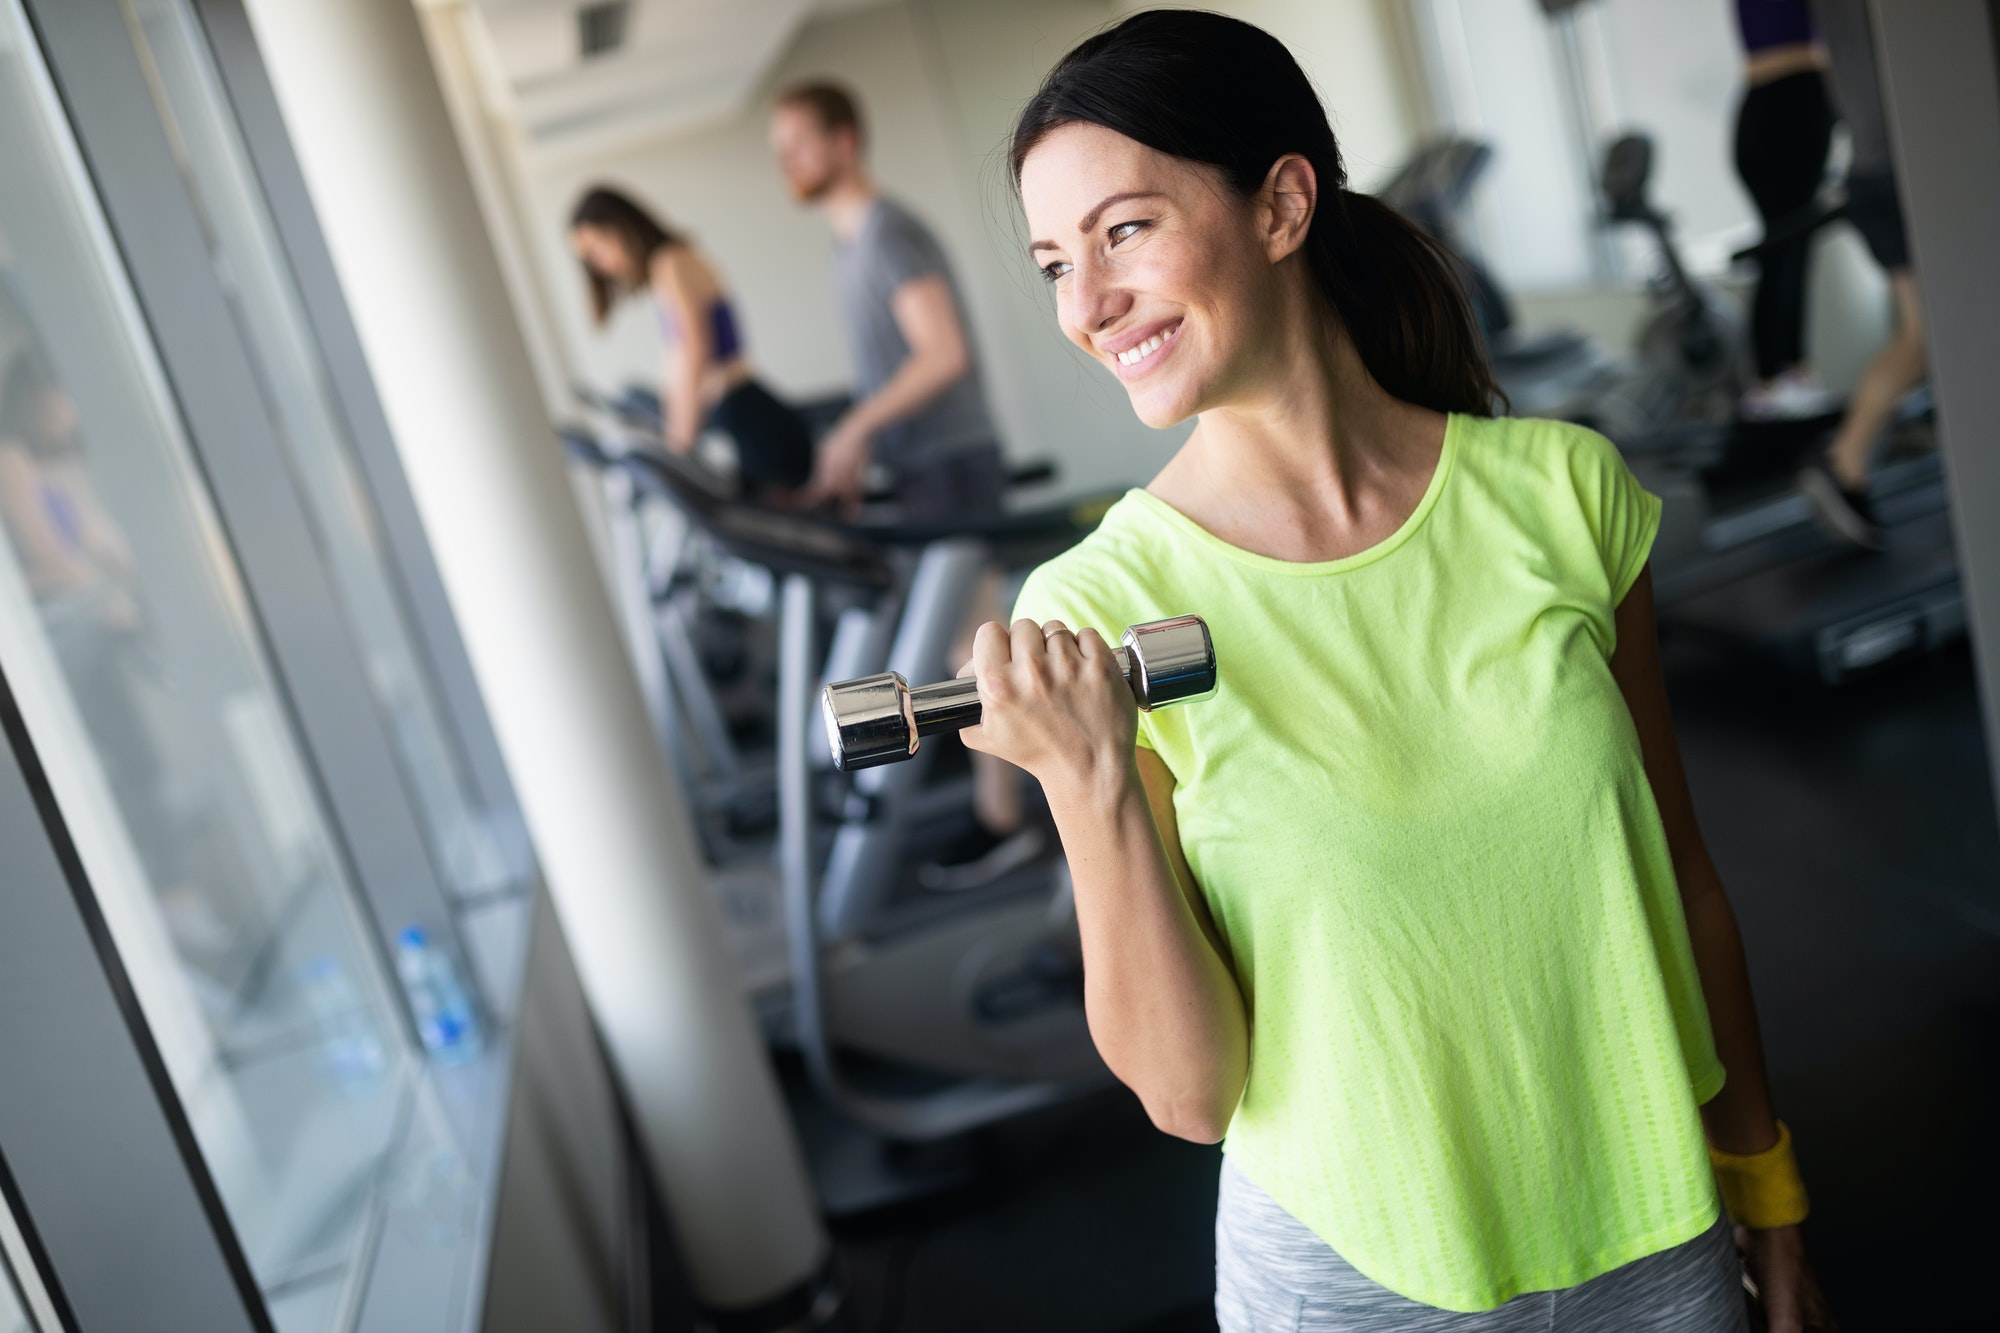 Attractive young woman working out with dumbbells at a gym